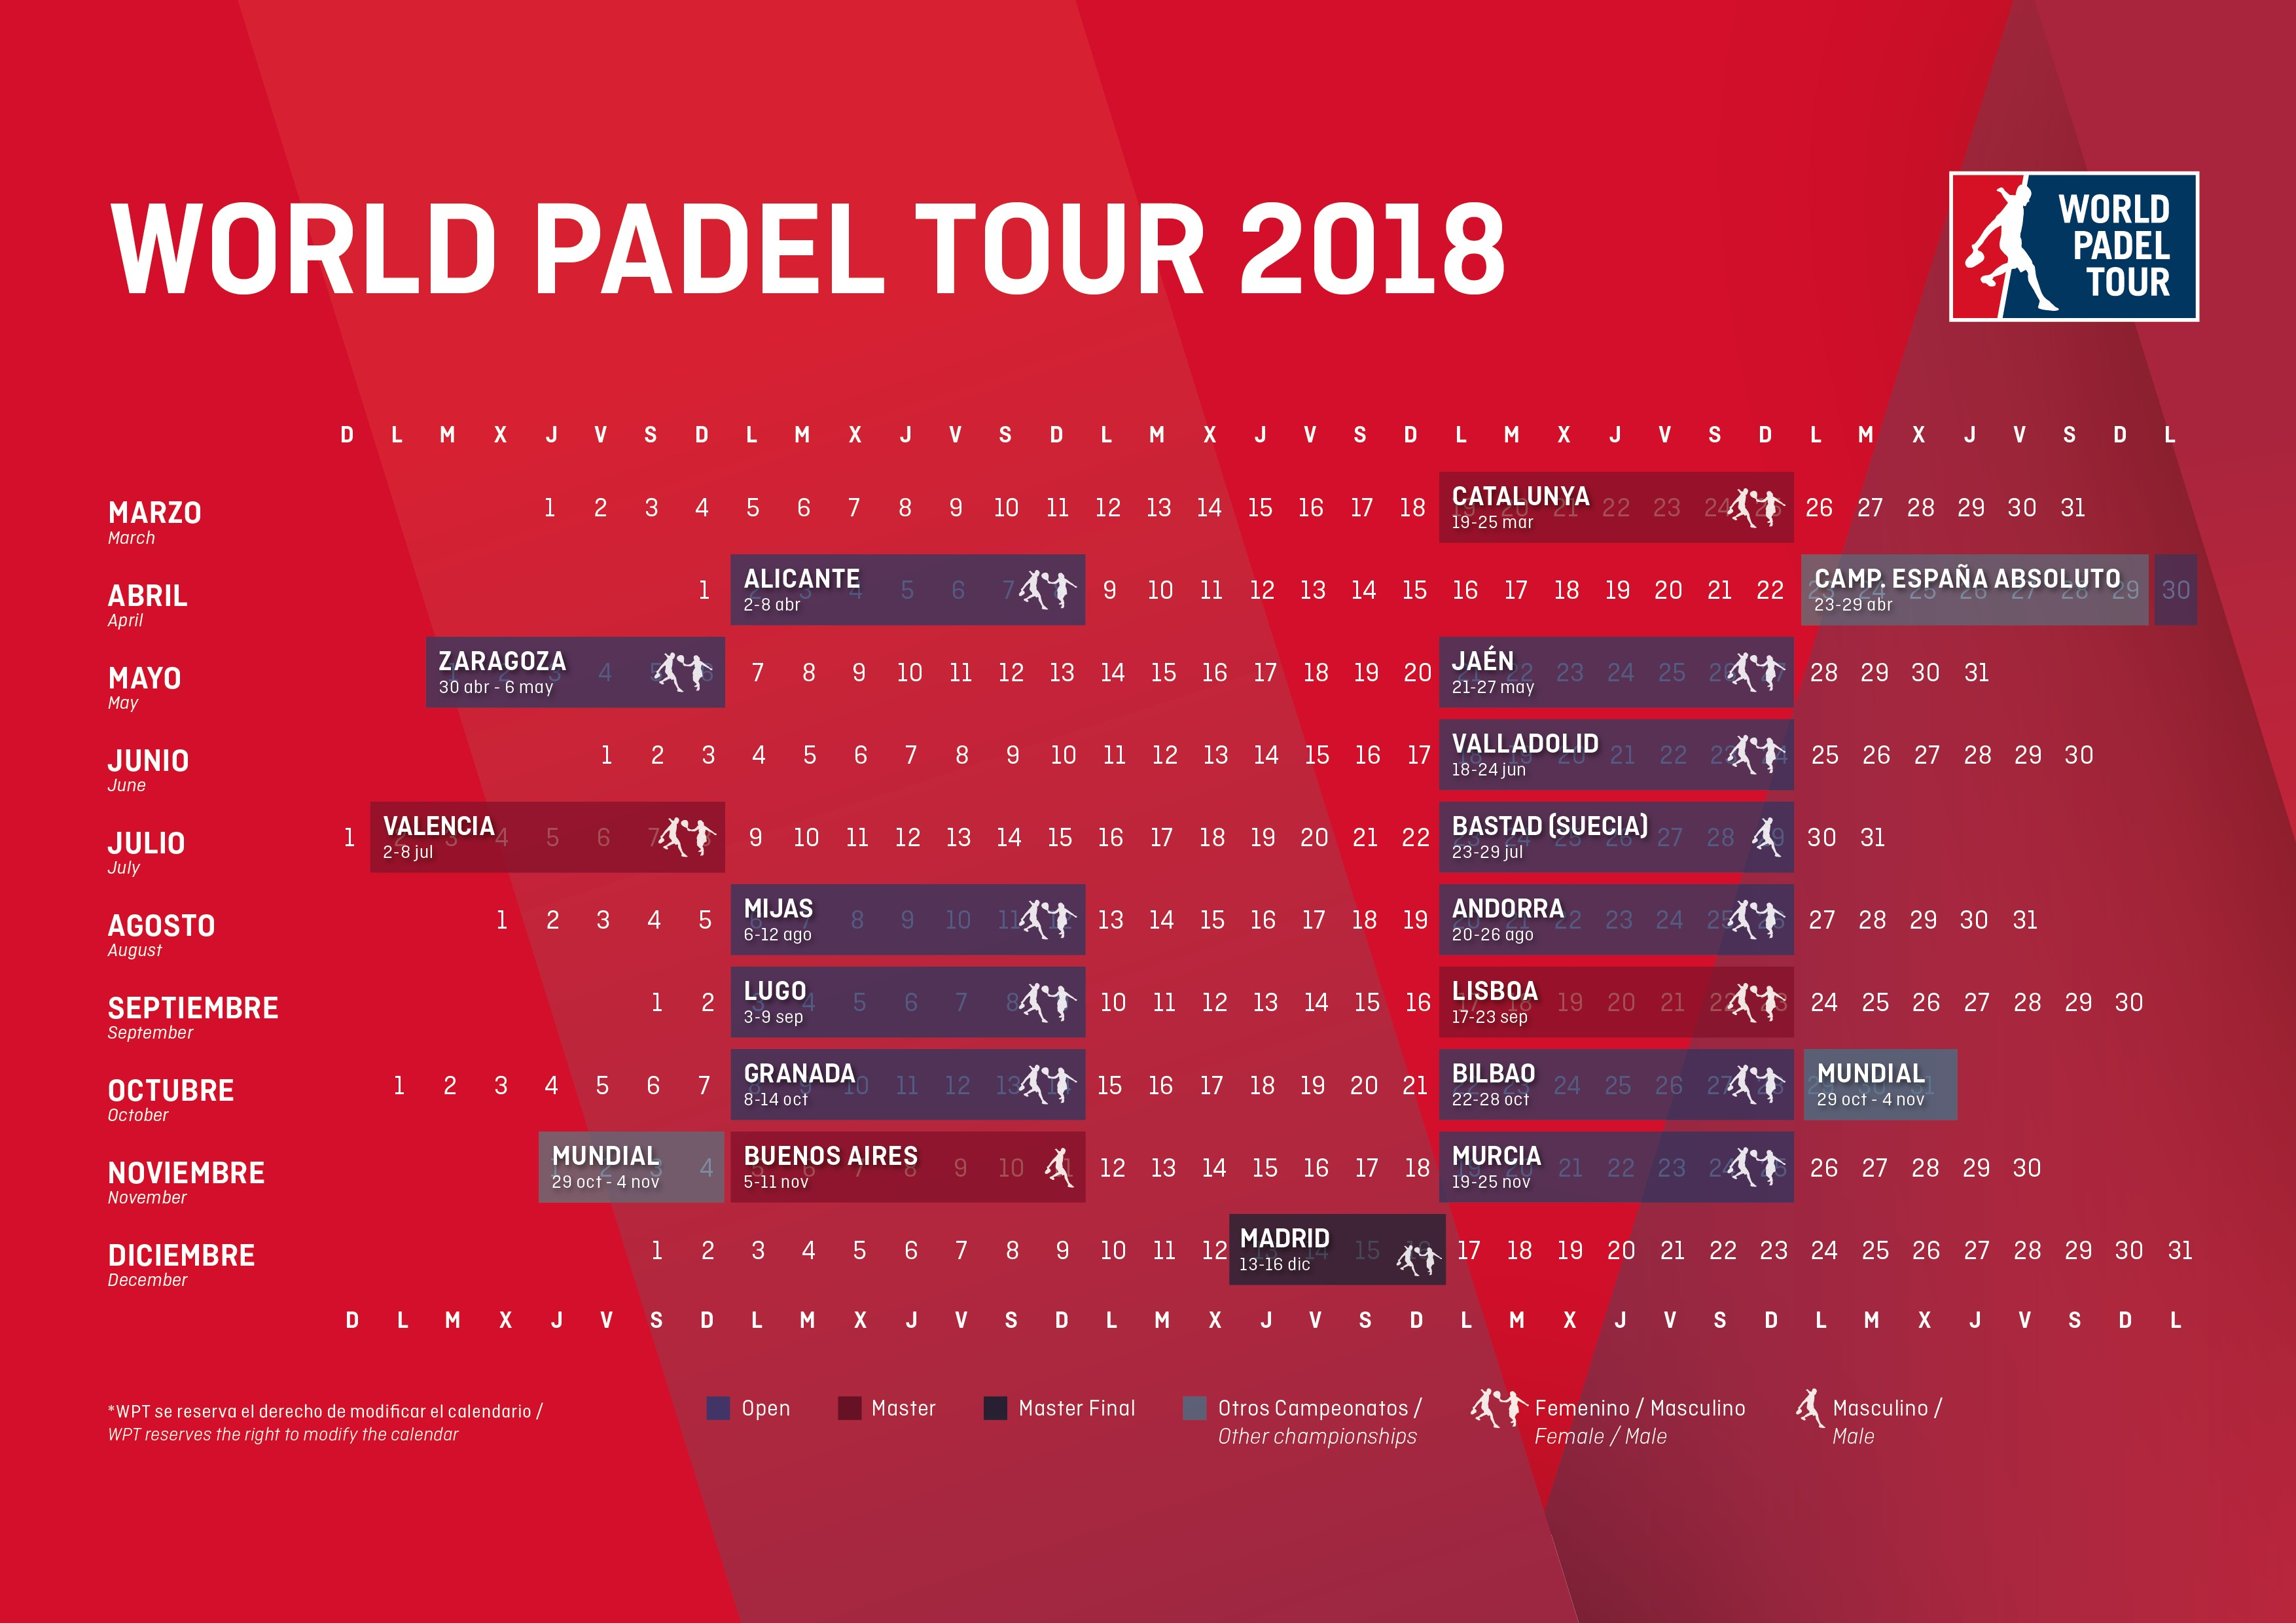 Calendario World Padel Tour | World Padel Tour